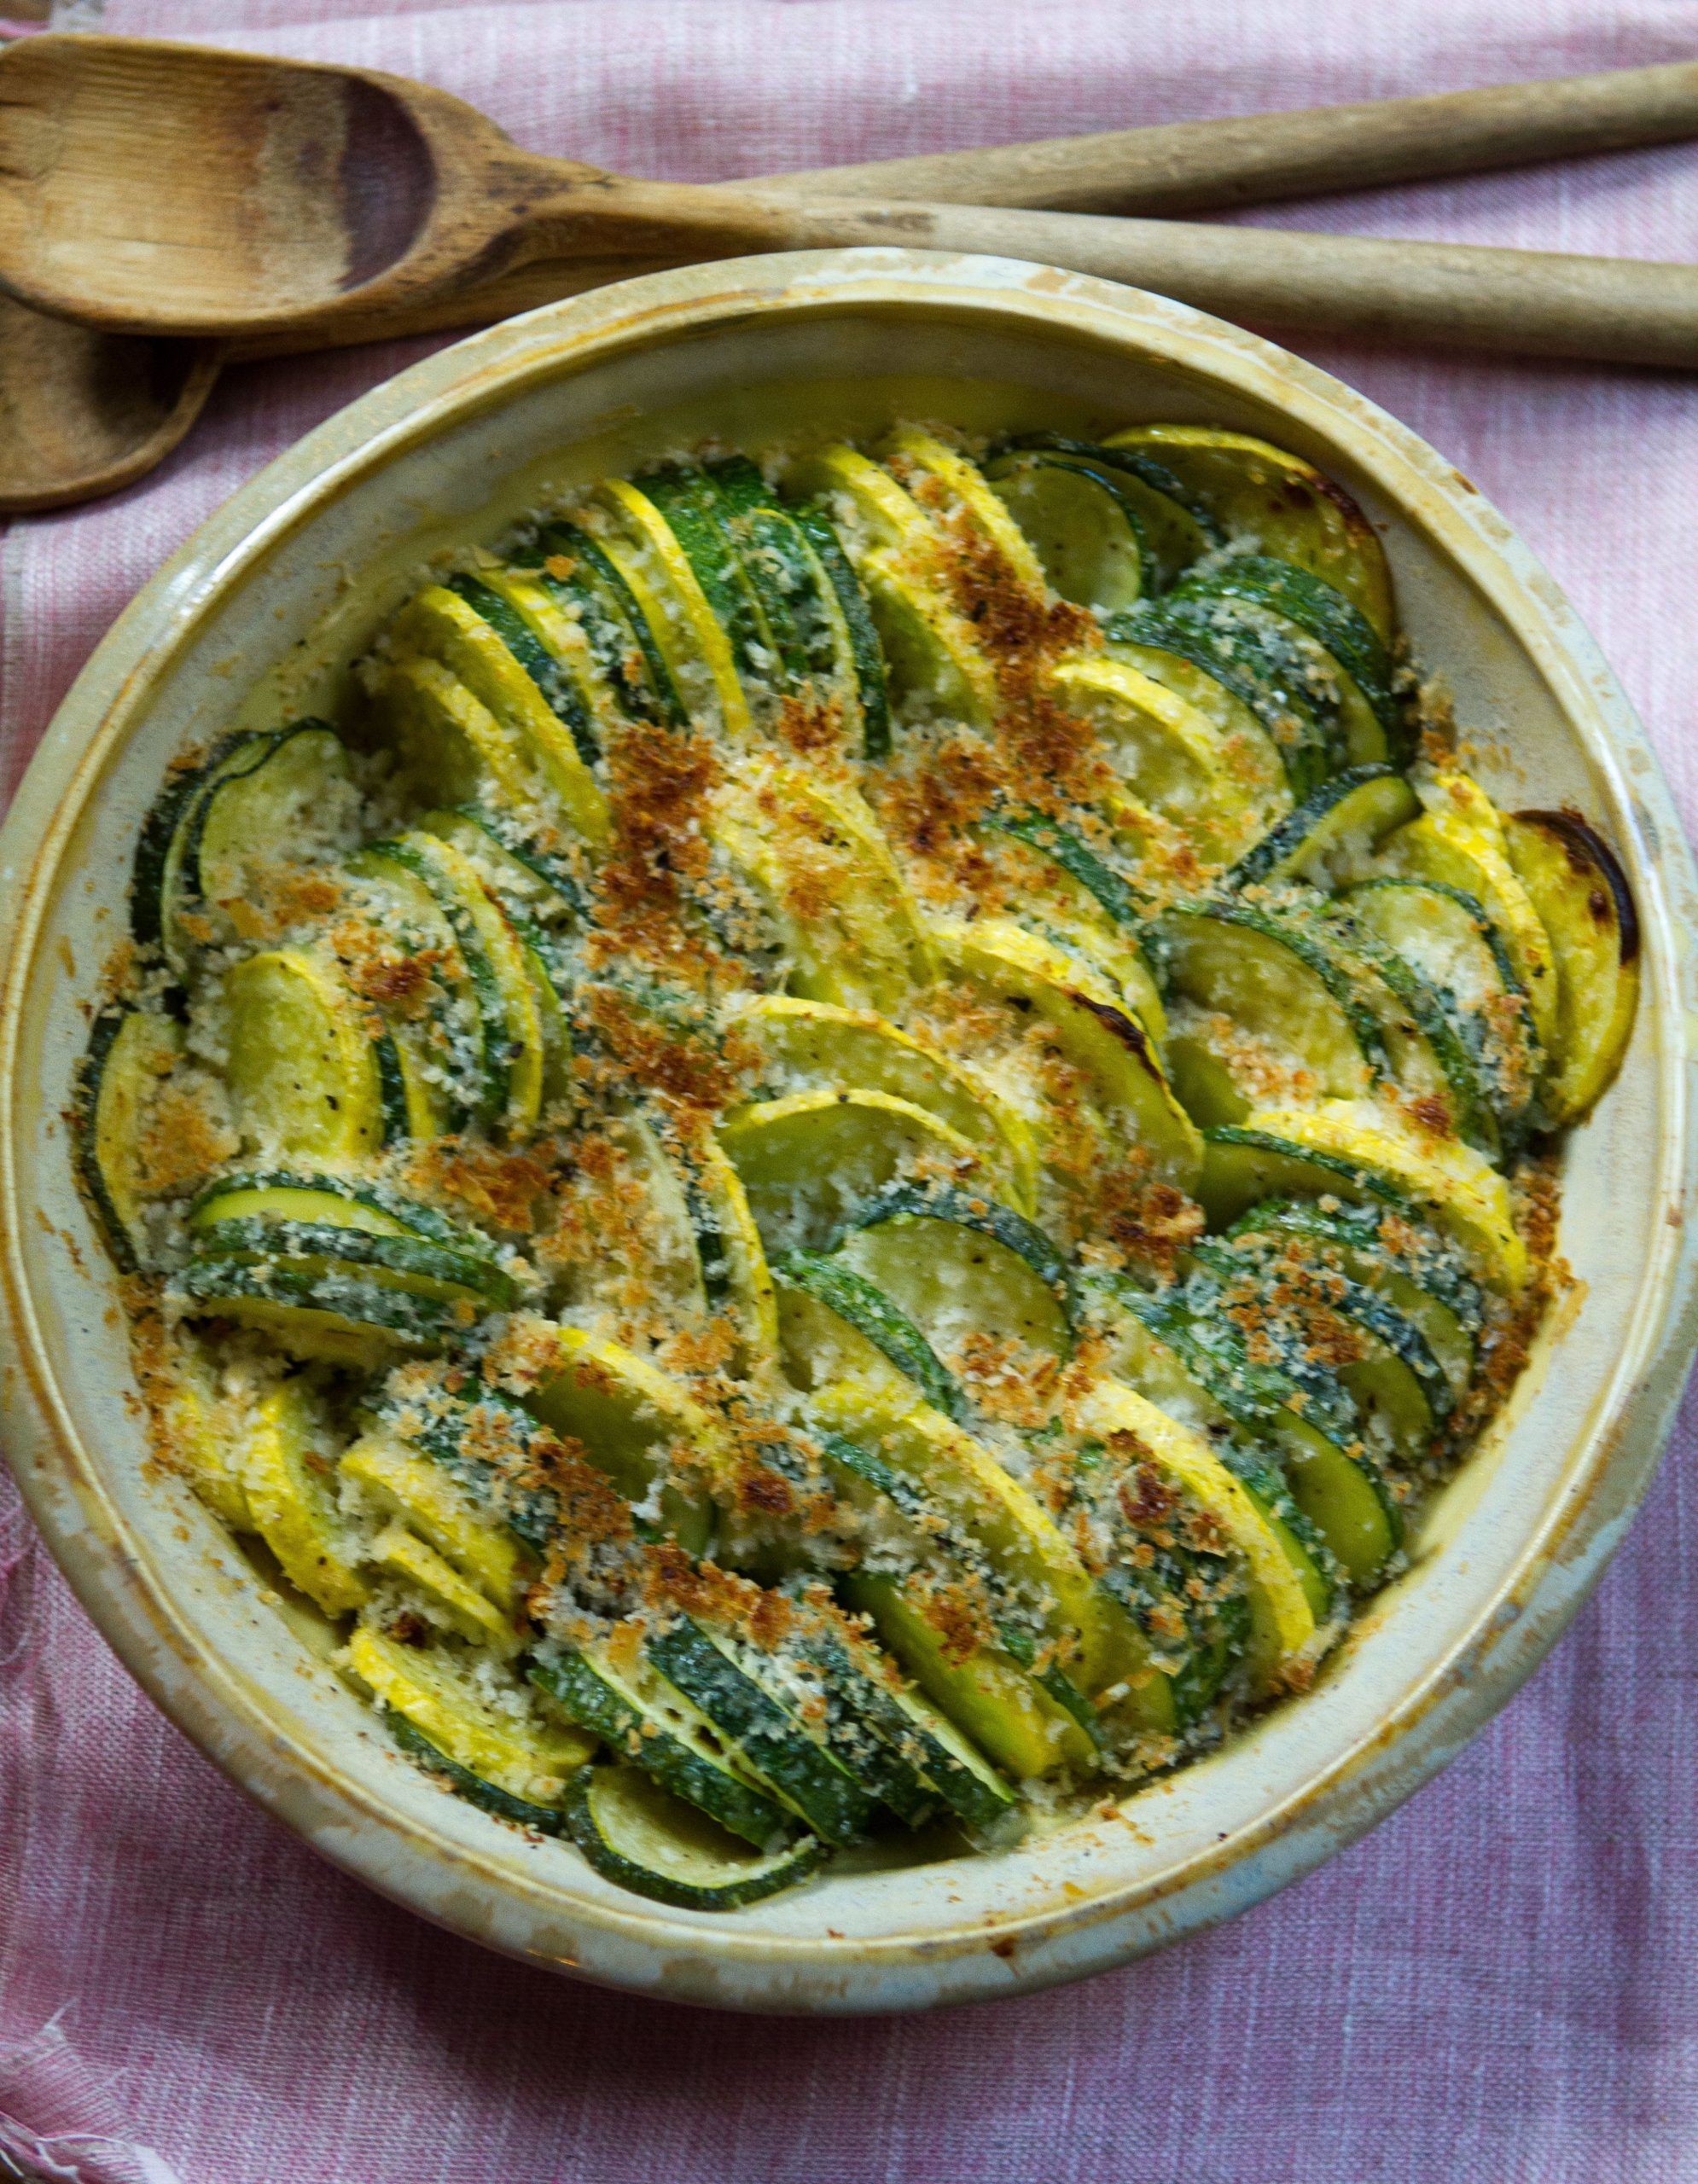 Baked Summer Squash - Recipes With Summer Squash